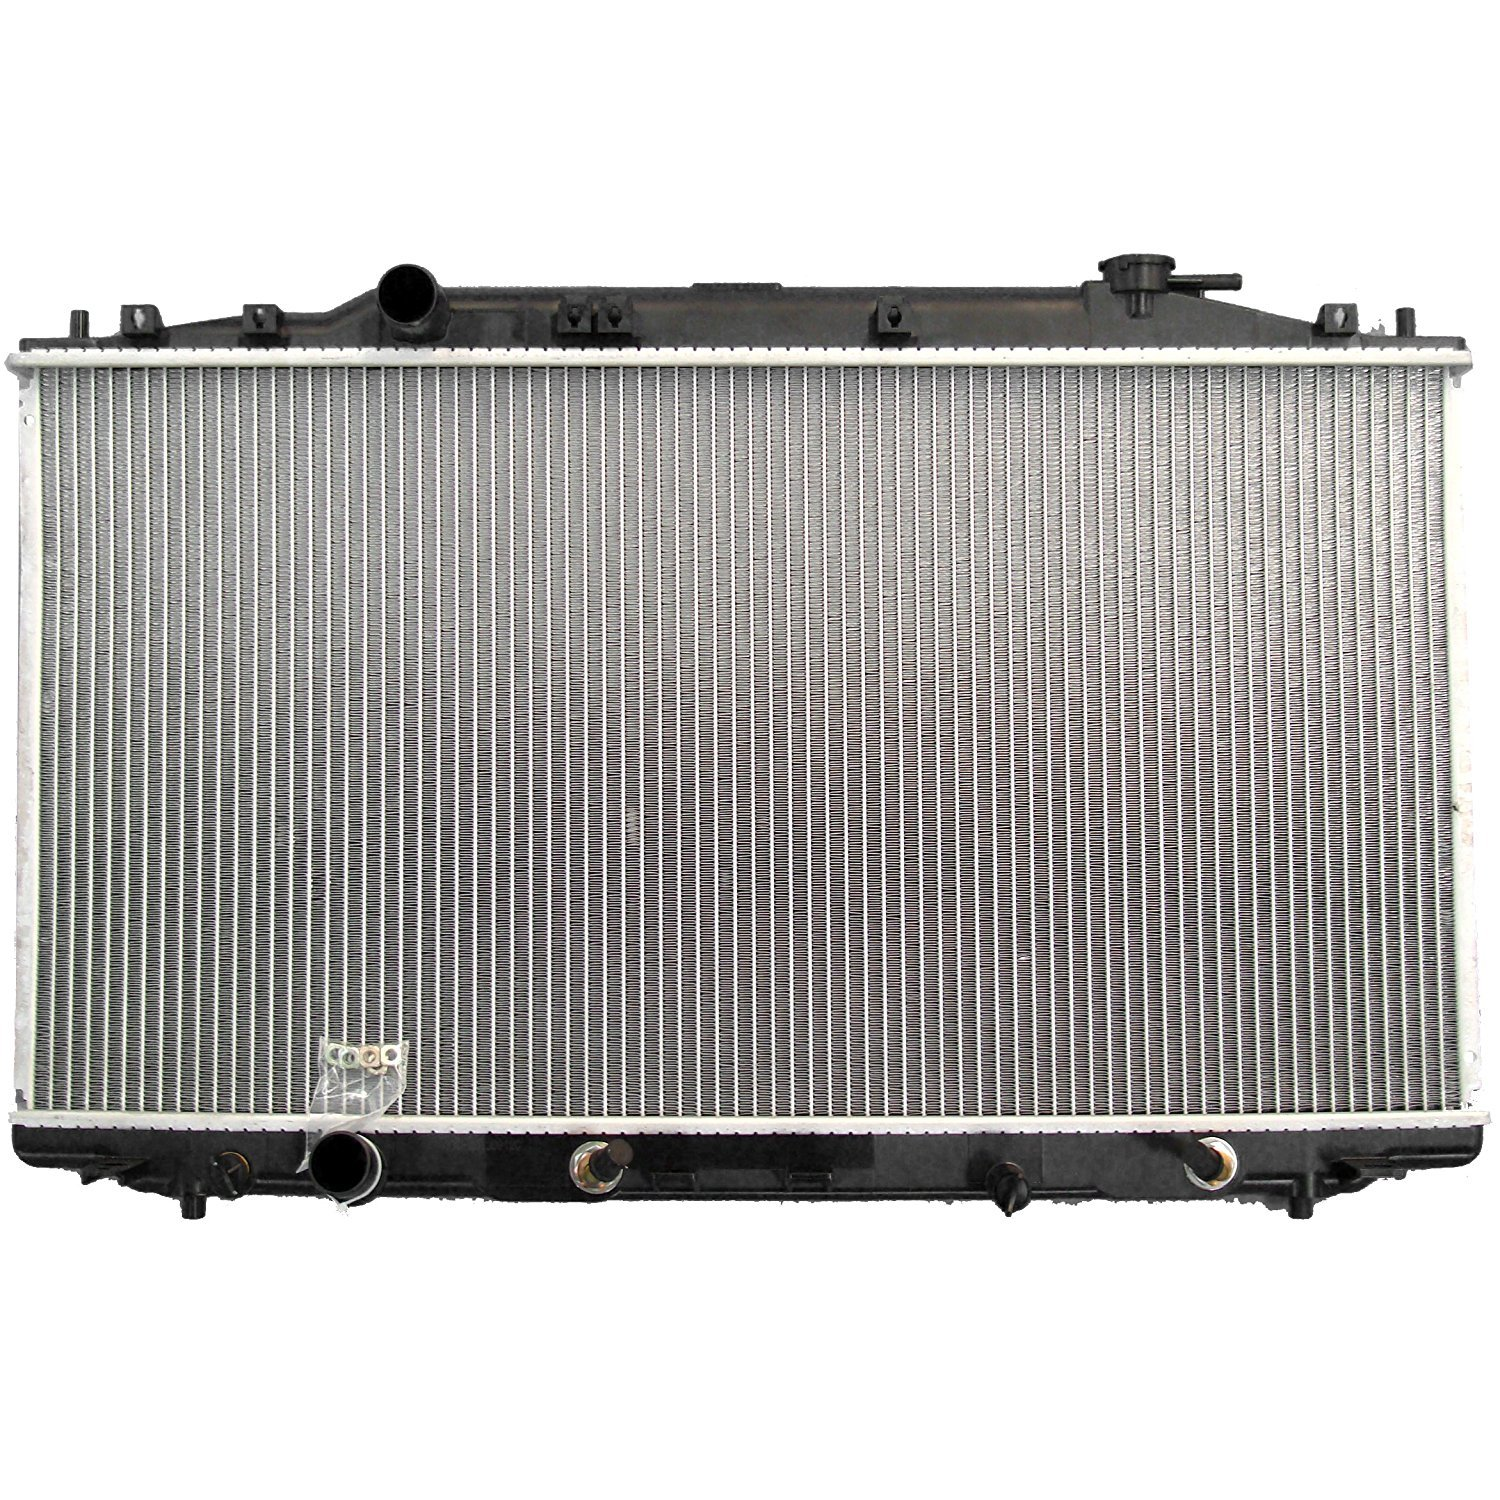 SCITOO 13009 Radiator fits for 2008-2012 Honda Accord Coupe Sedan 2.4L 054005-5206-1721142